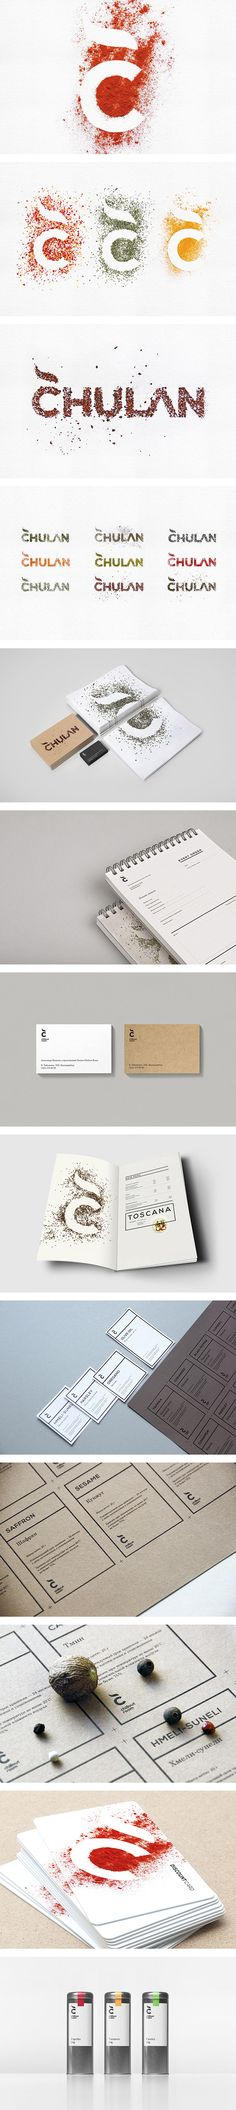 Chulan branding by Loyalty Creative Technology - there is something so creative about this lettering and branding that makes it eye-catching.